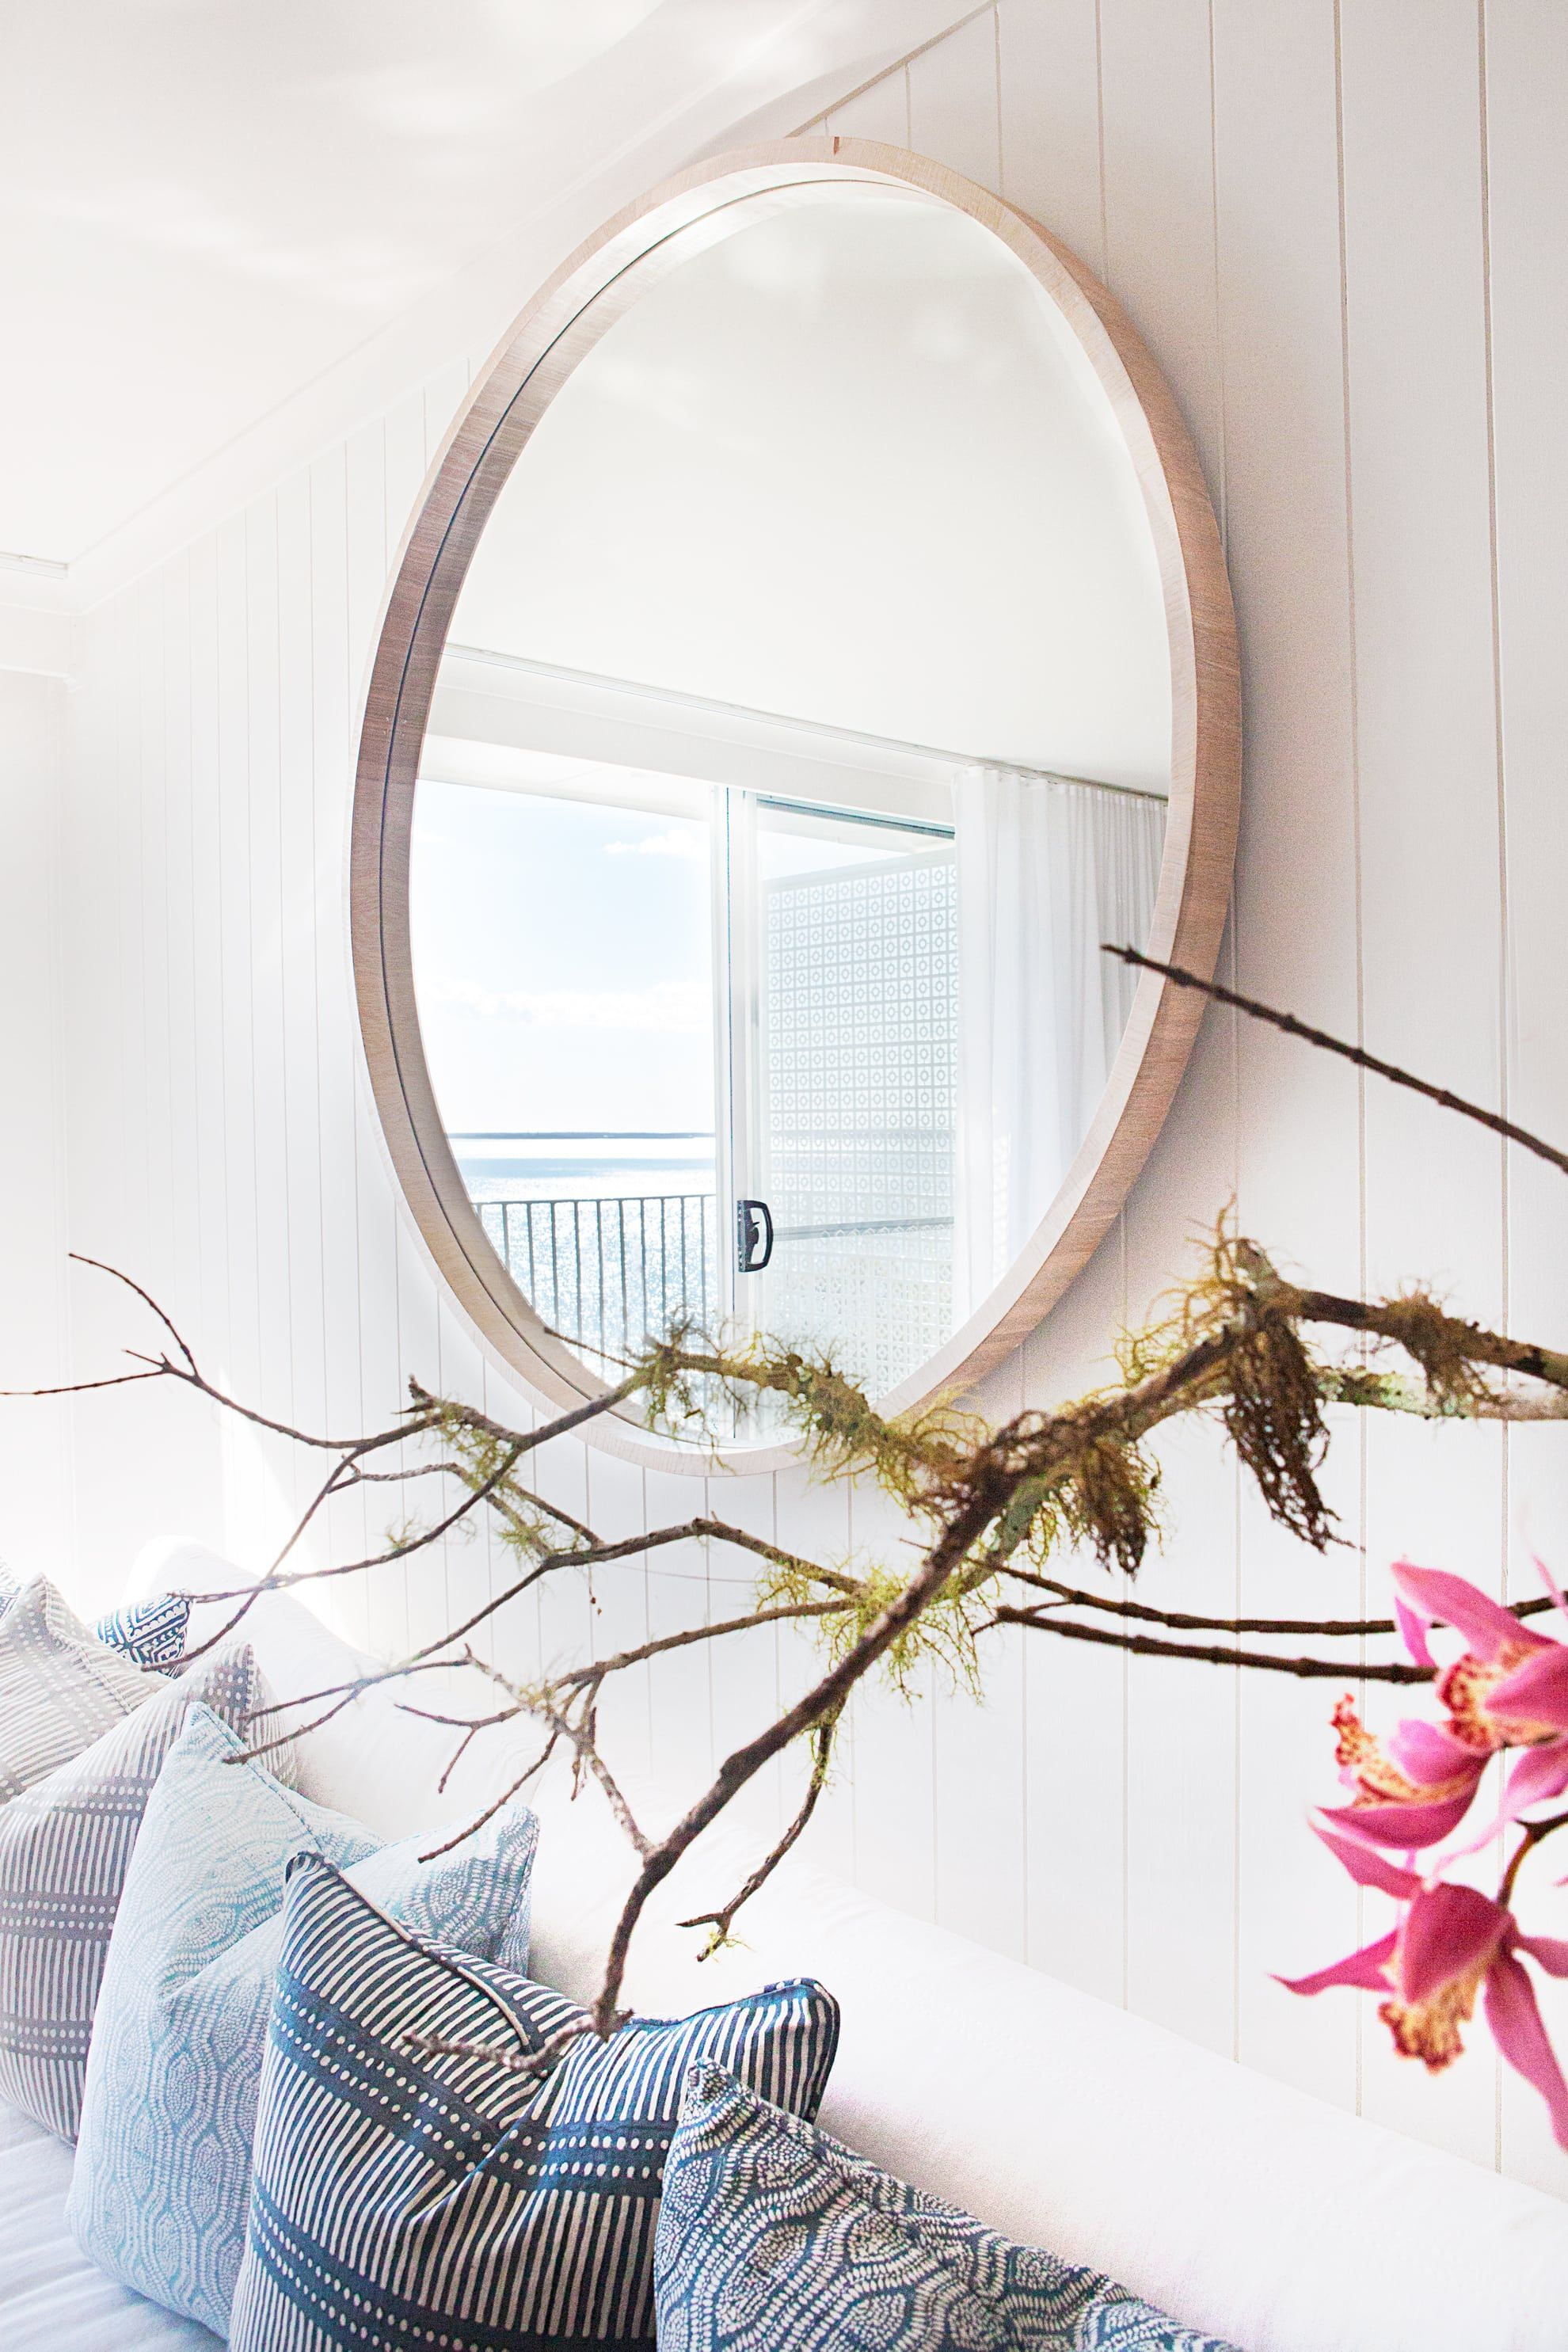 Large mirror reflects view of ocean outside